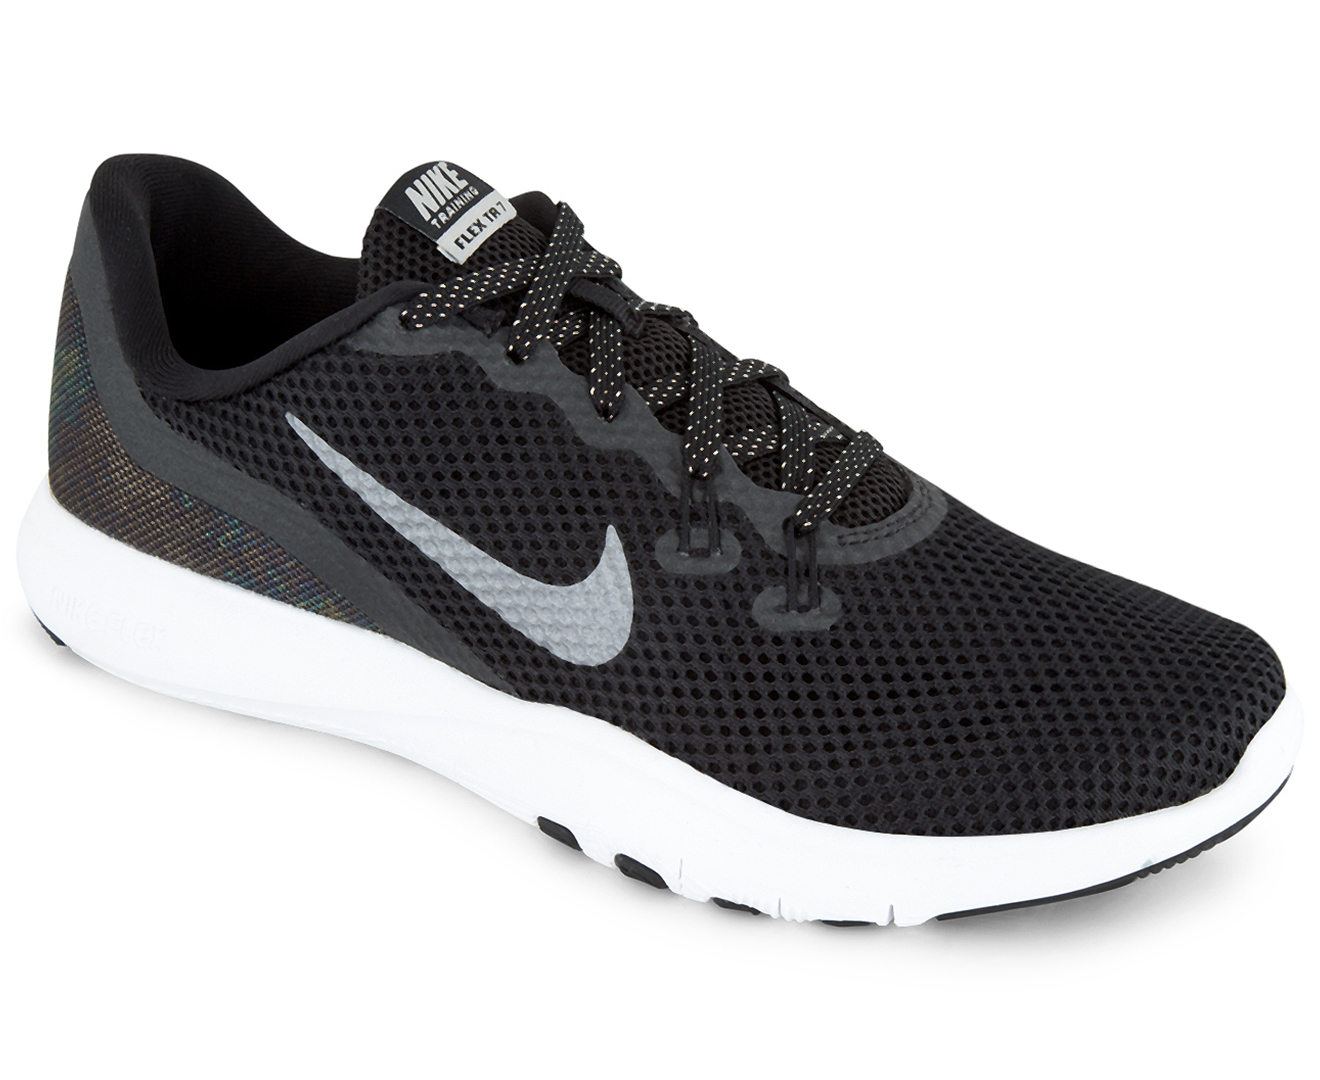 80b8e73dffdf Nike Women s Flex Trainer 7 MTLC Shoe - Black Metallic Dark Grey ...